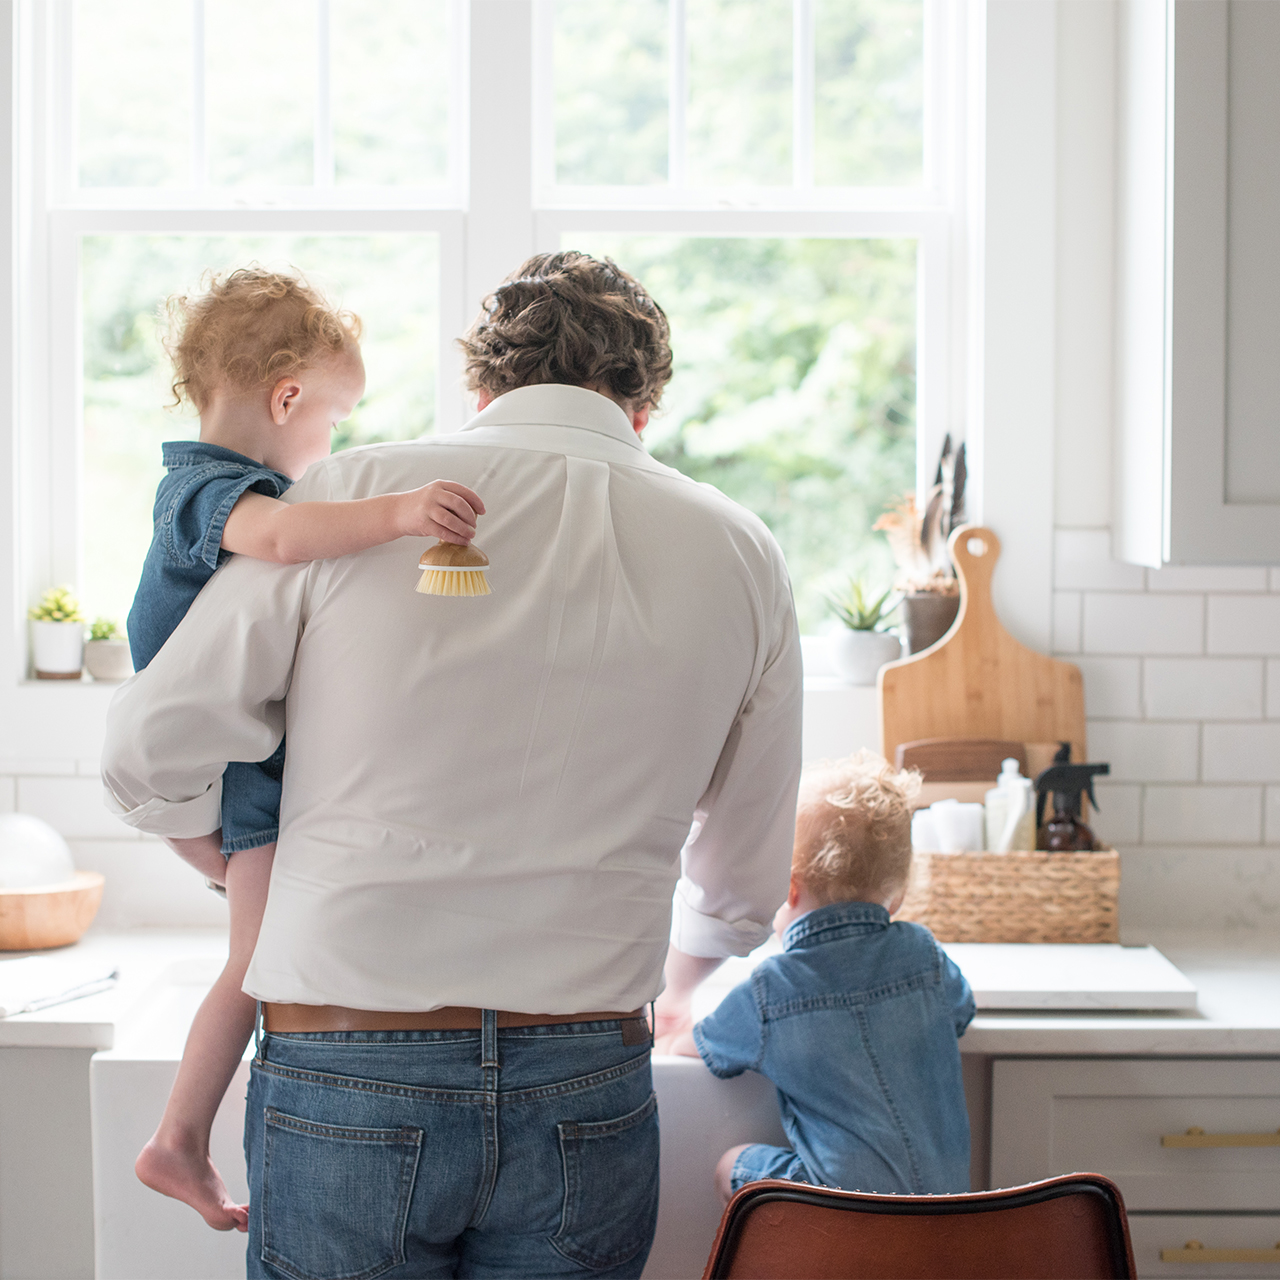 Man with his back to the camera stands over a kitchen sink with two young boys